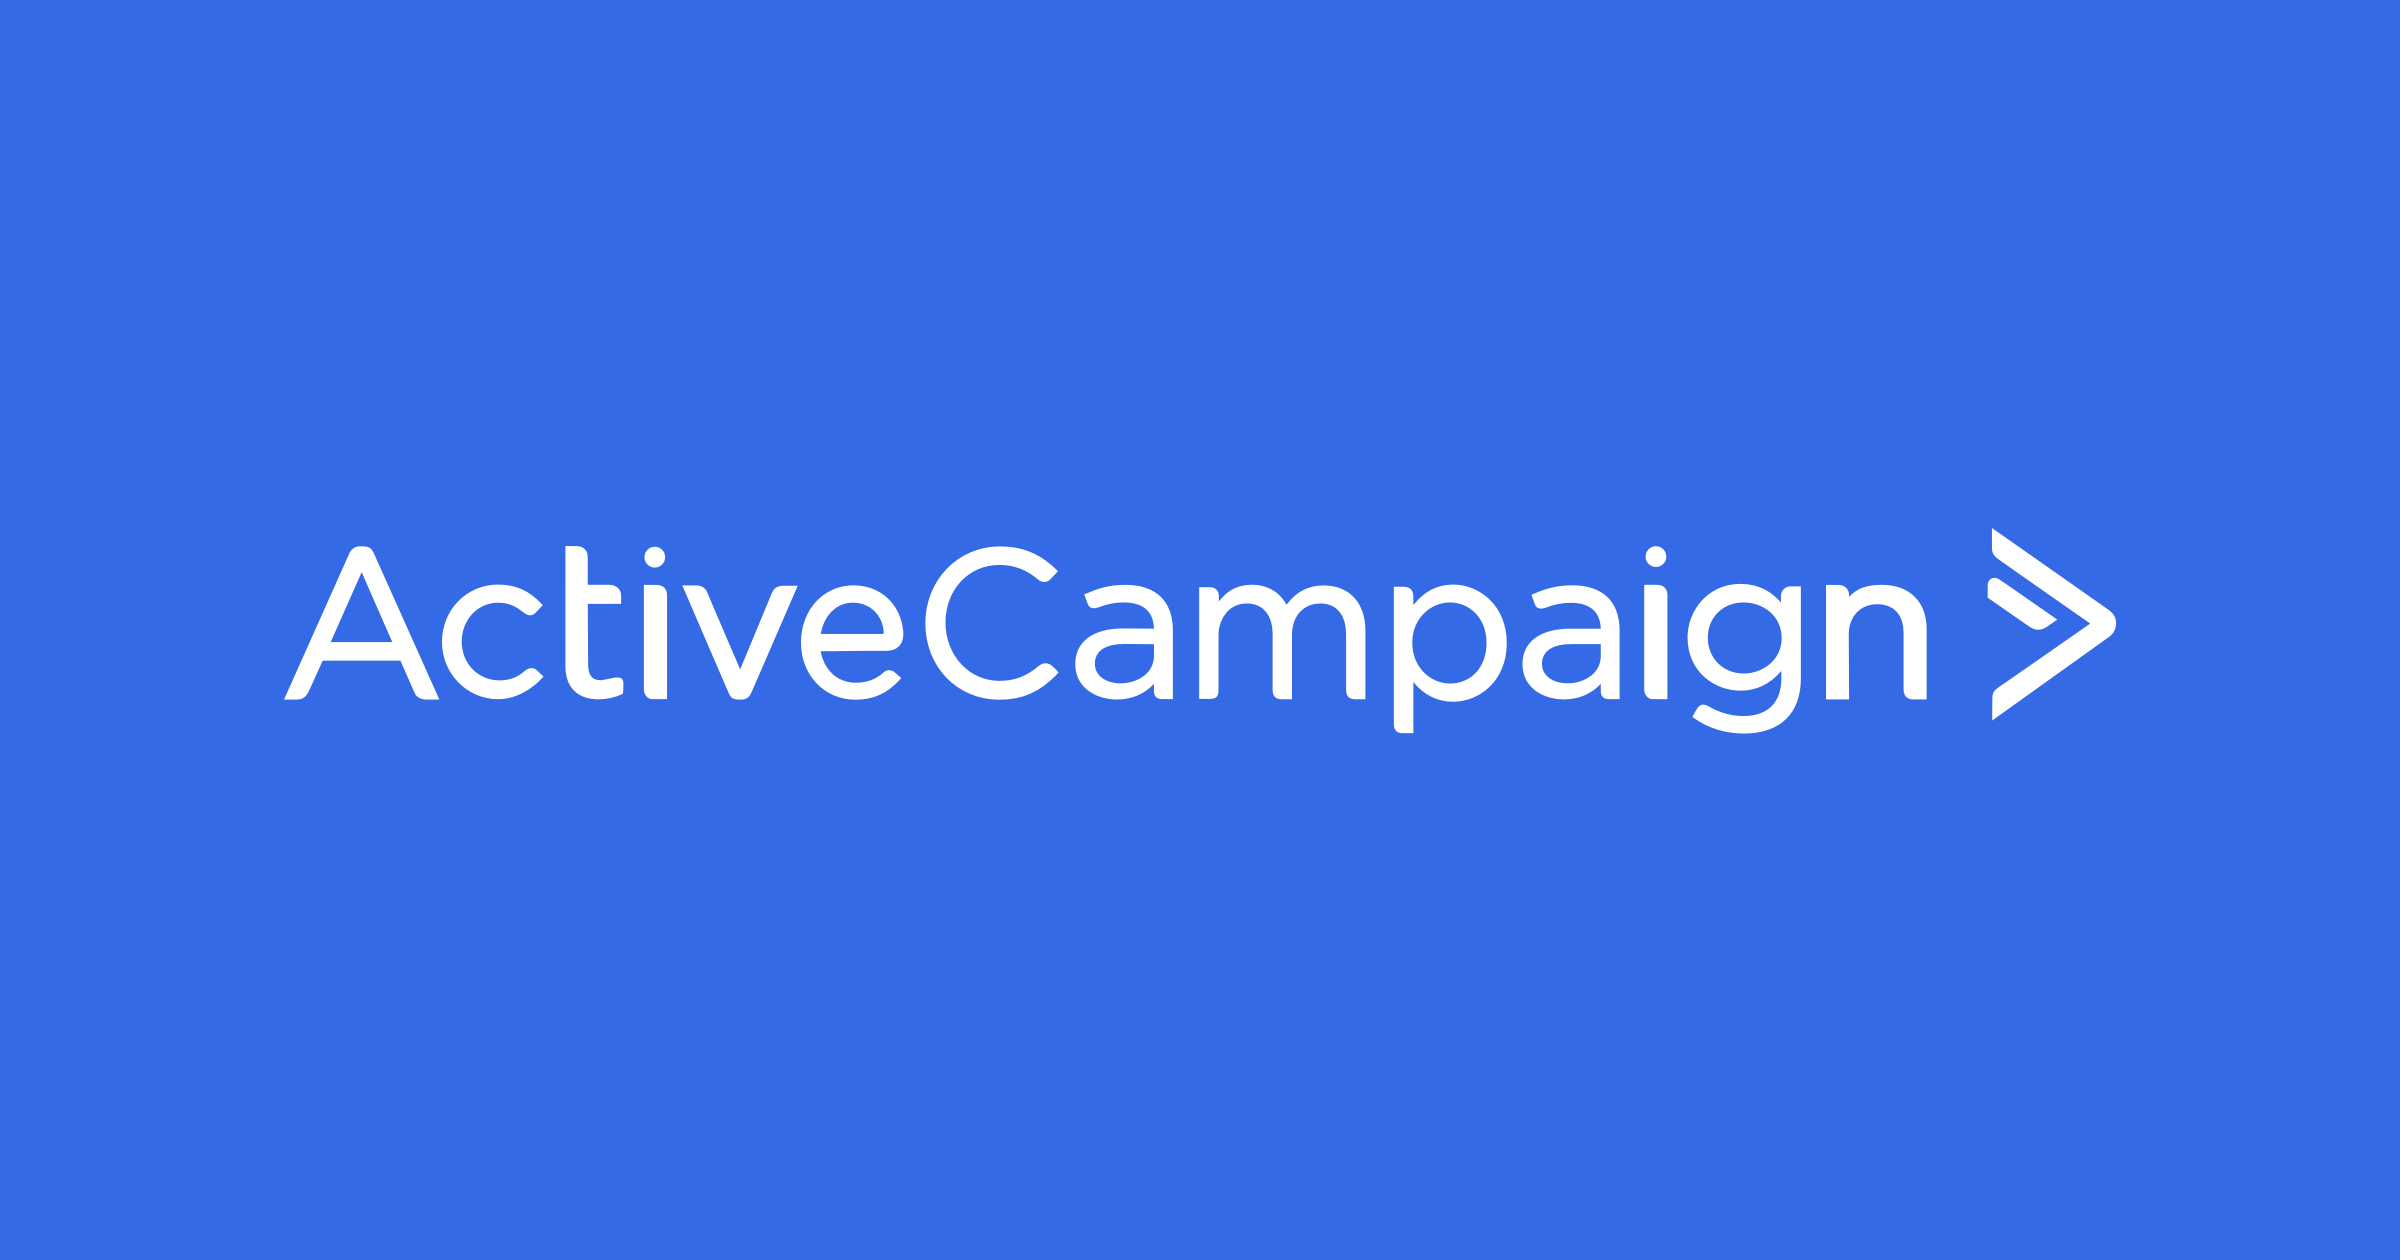 What is ActiveCampaign used for?